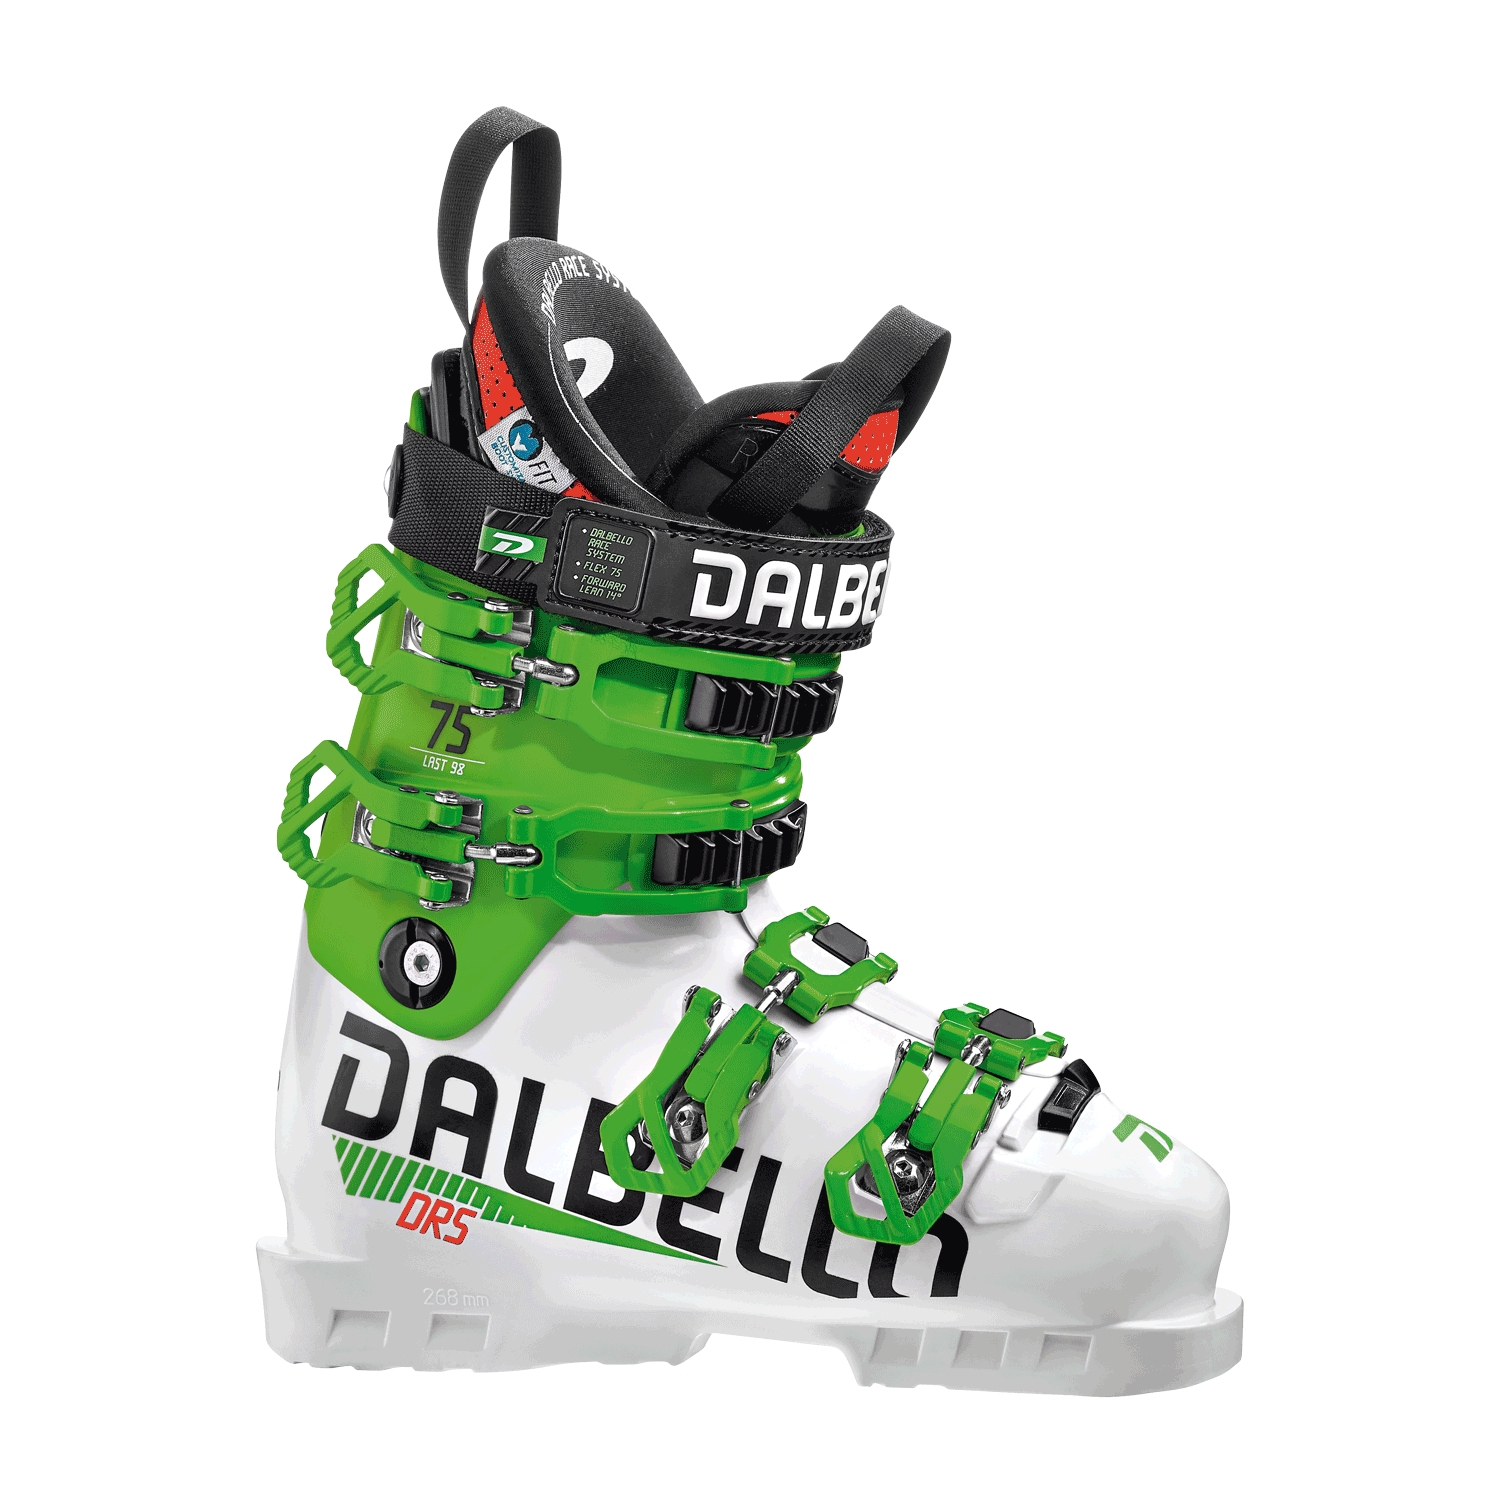 14 Best Ski Boots images   Ski boots, Boots, Skiing